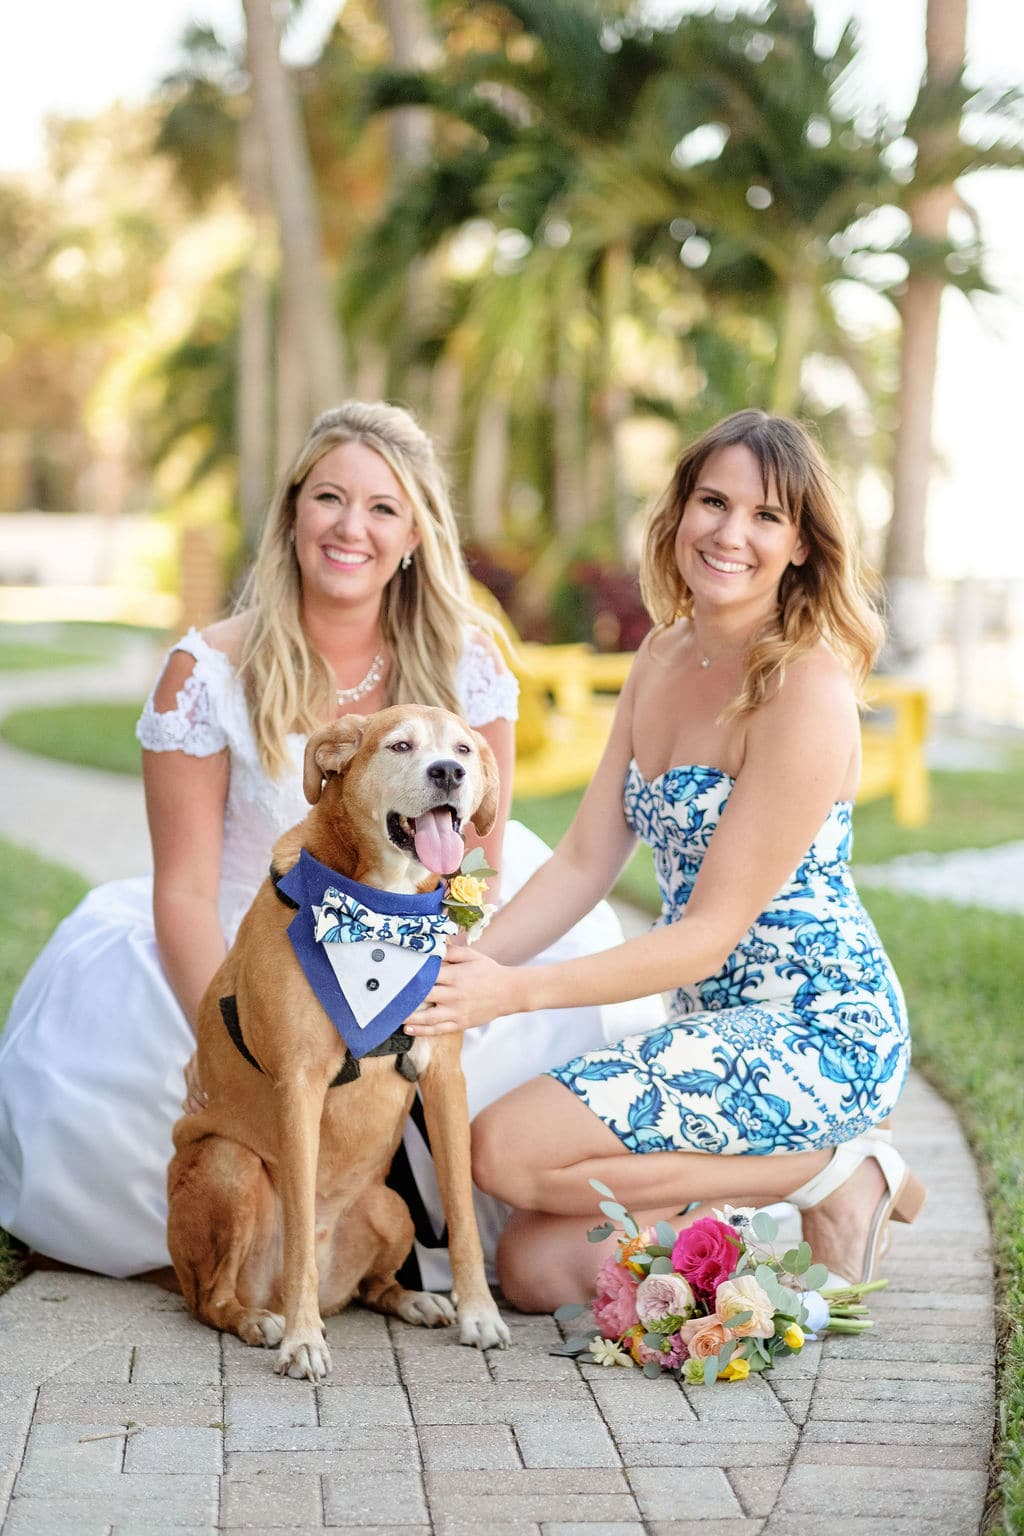 Bride and Bridesmaid with dog with bowtie